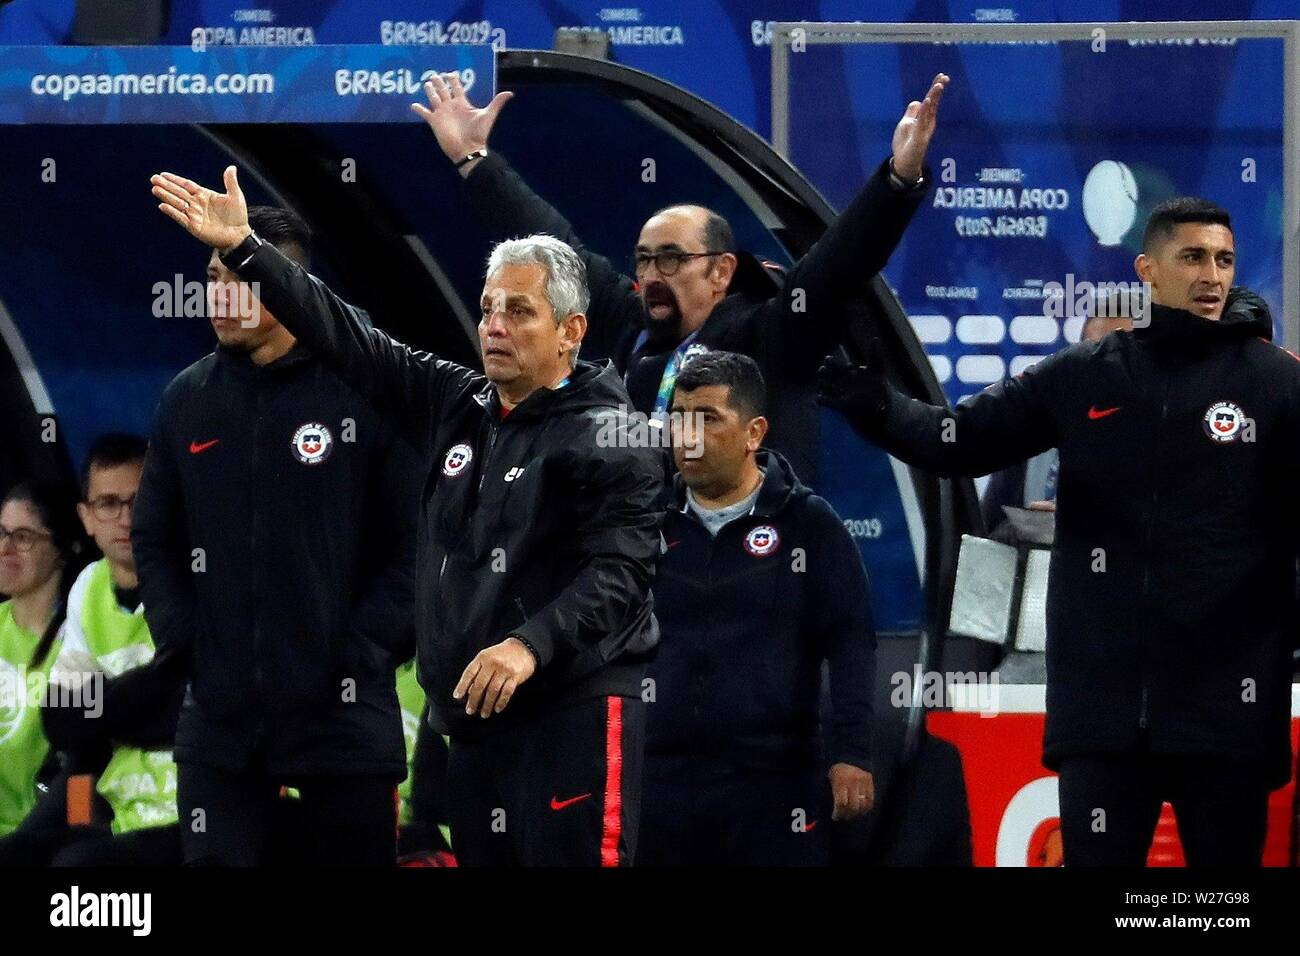 Sao Paulo, Brazil. 06th July, 2019. Chile's head coach Reinaldo Rueda reacts during the Copa America 2019 3rd place soccer match between Argentina and Chile, at Arena Corinthians Stadium in Sao Paulo, Brazil, 6 July 2019. Credit: Paulo Whitaker/EFE/Alamy Live News - Stock Image